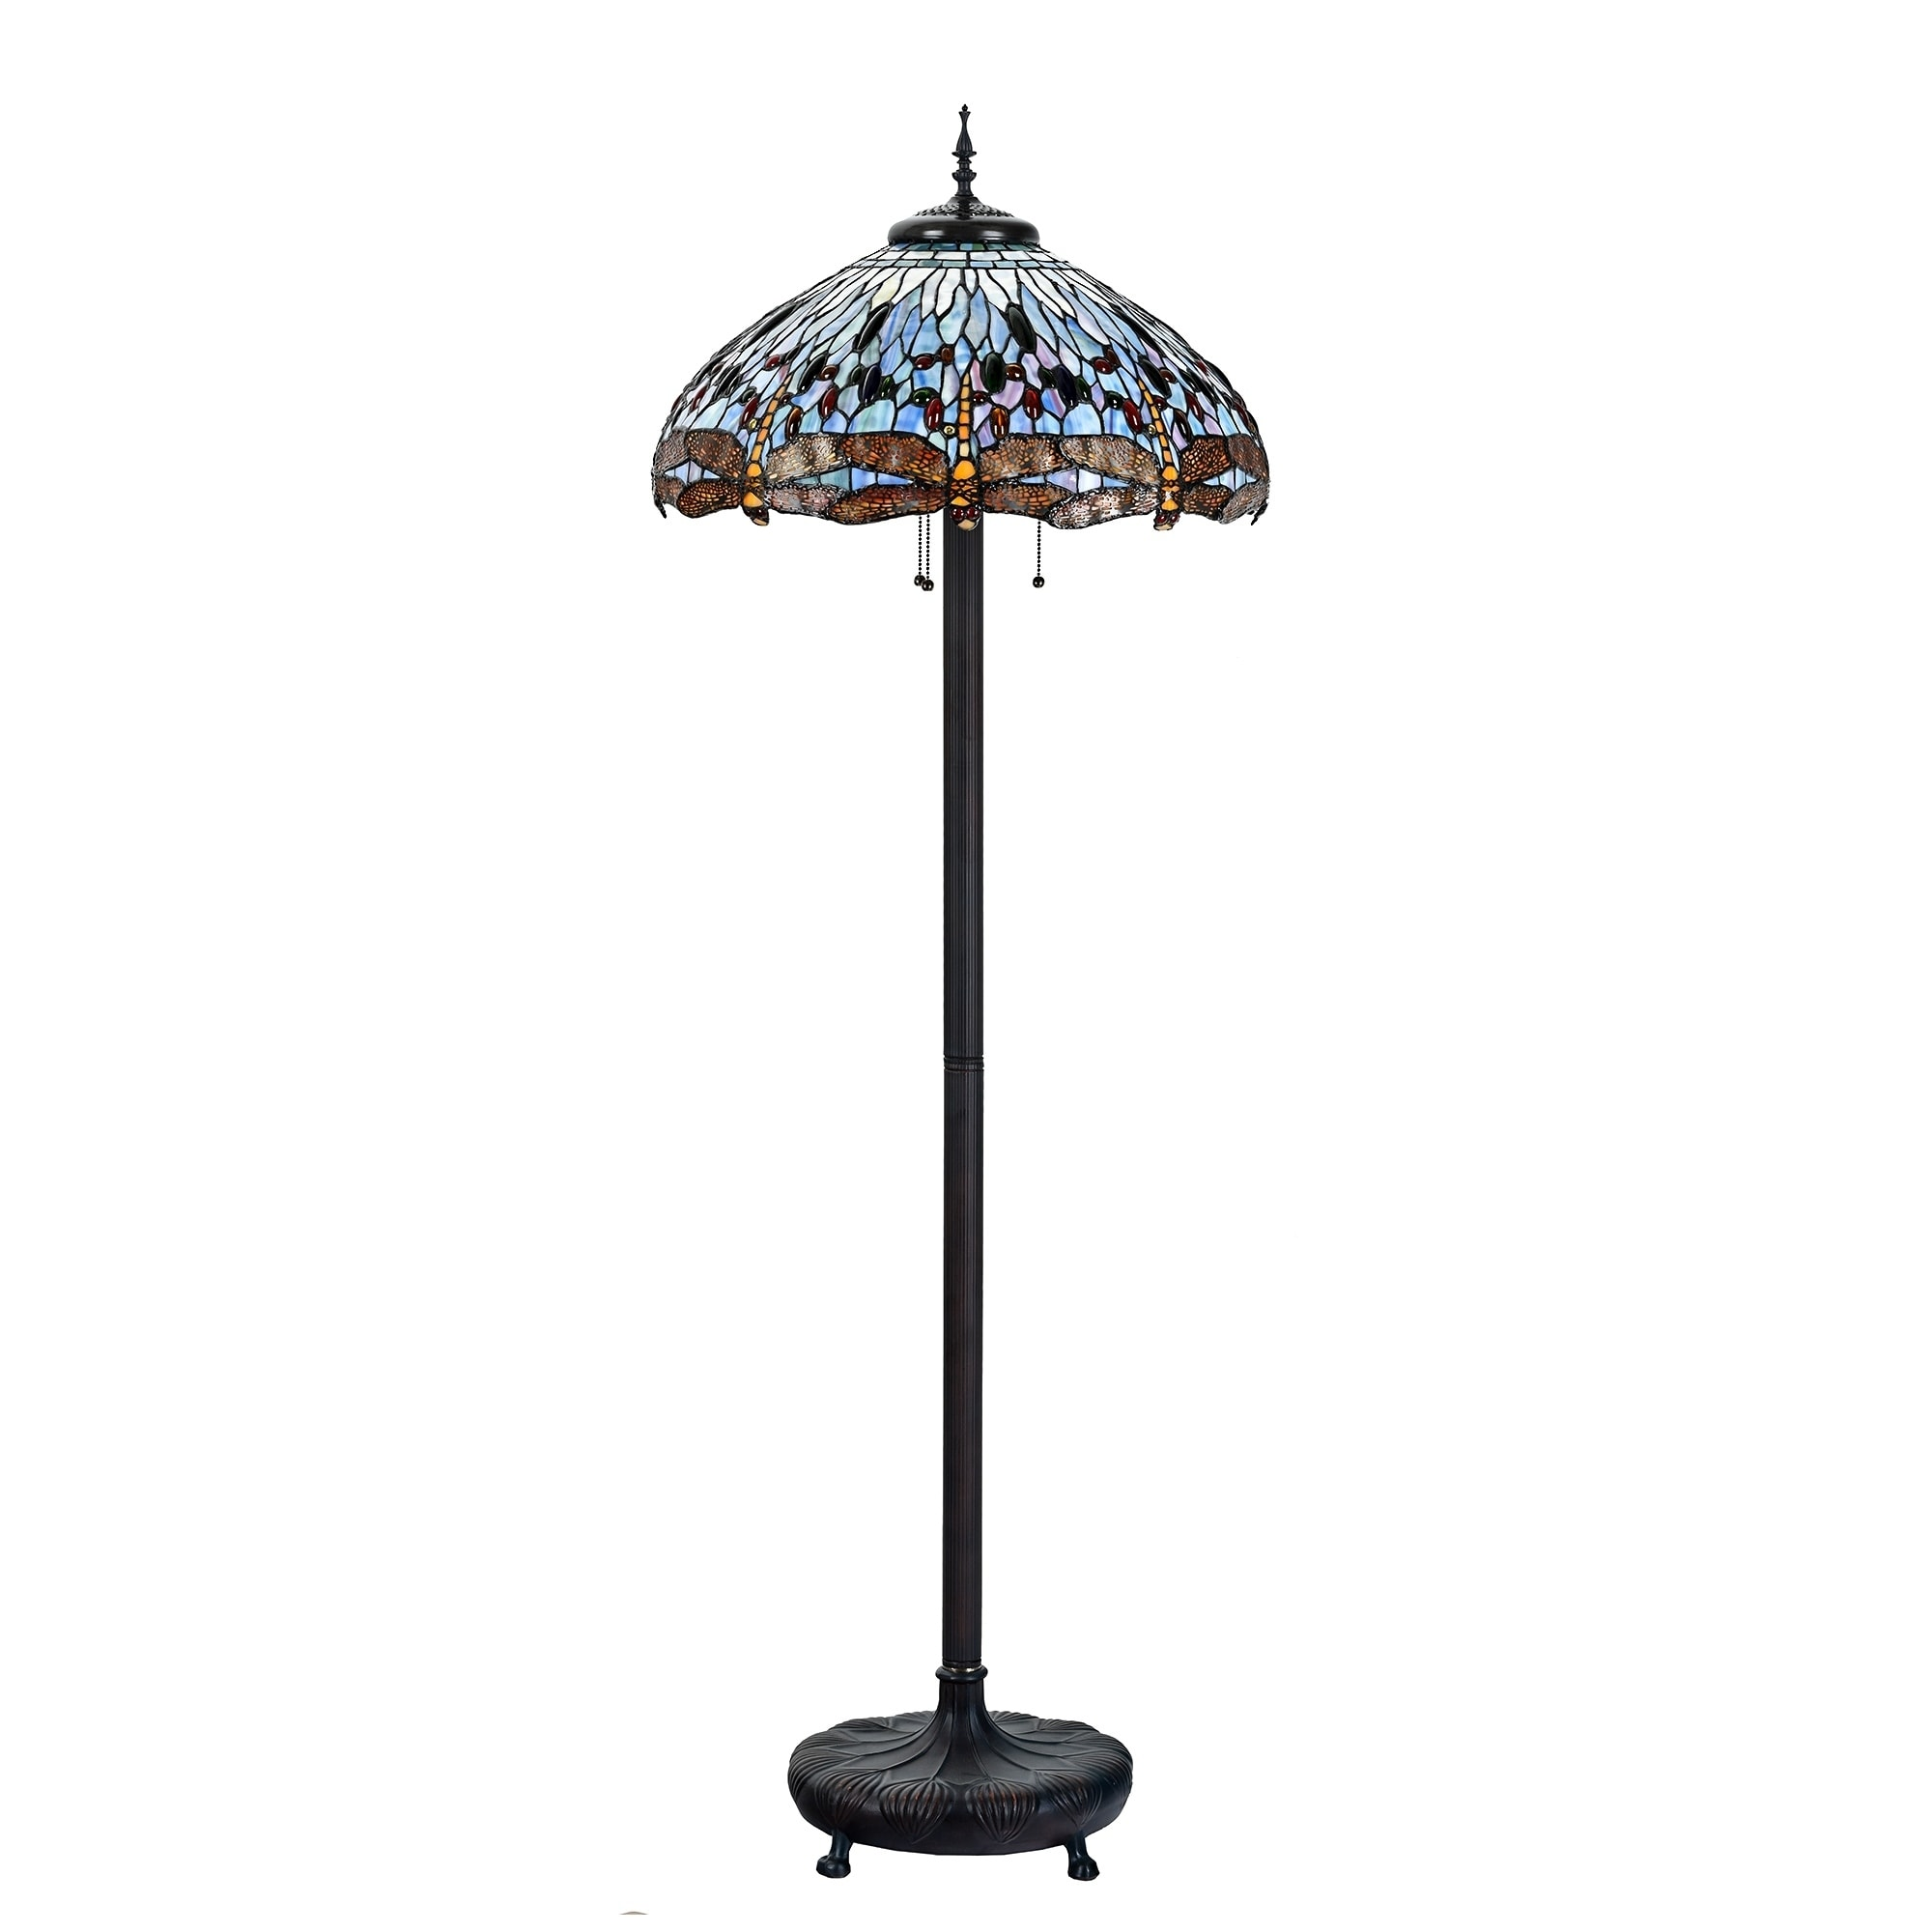 Tiffany Style 22 Inch Lampshade Floor Lamp Victorian Dragonfly Home Decor Stained Gl Lighting On Free Shipping Today